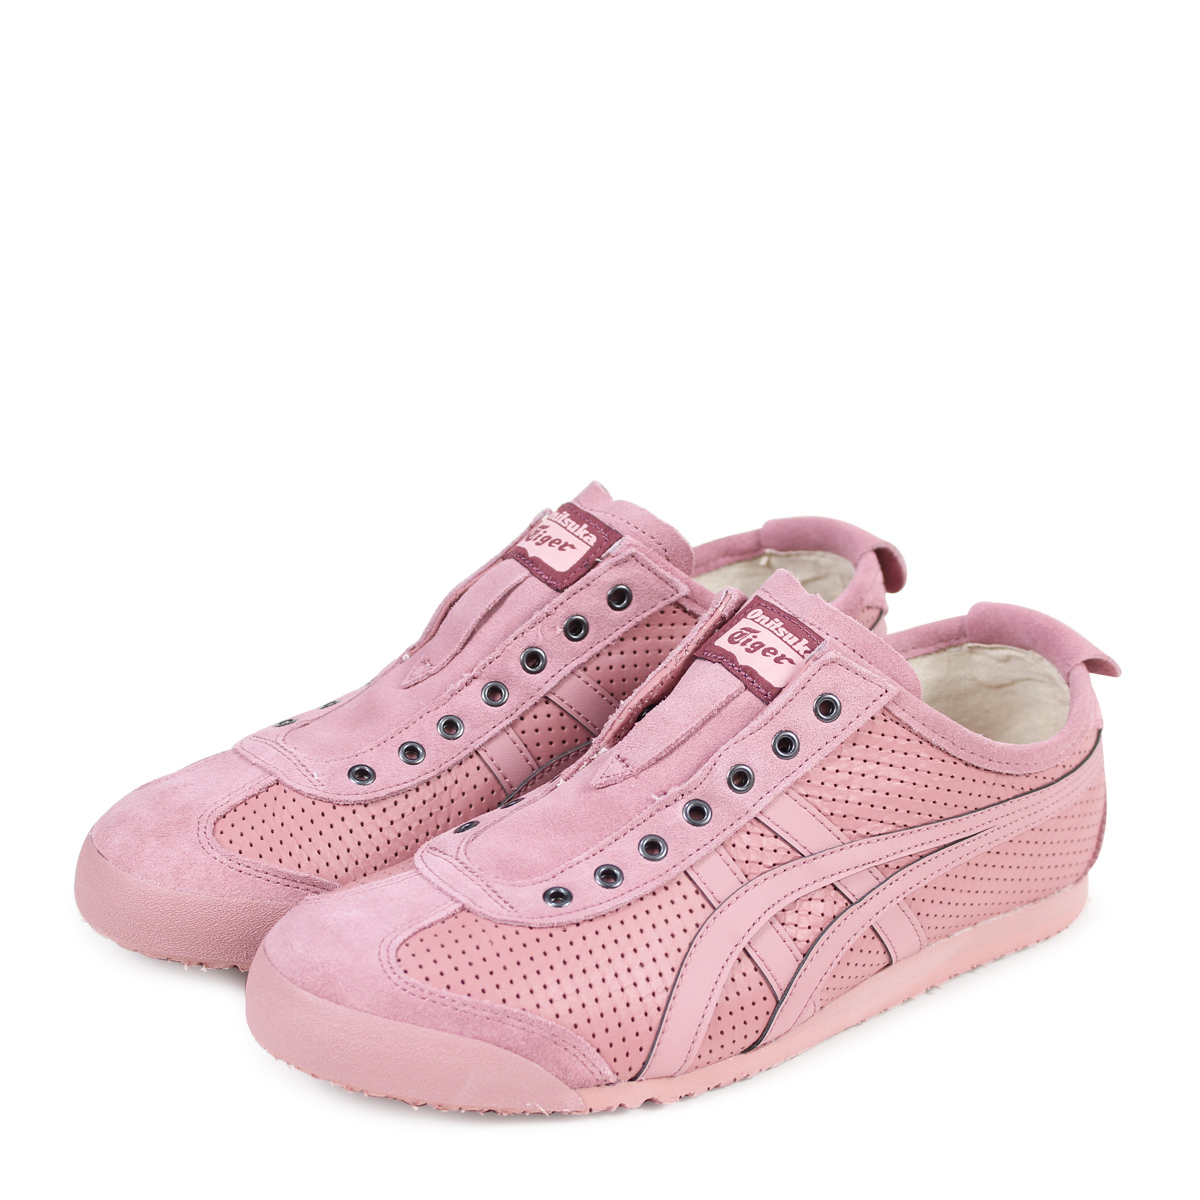 the latest ada73 a4fff Onitsuka Tiger MEXICO 66 SLIP-ON Onitsuka tiger Mexico 66 slip-ons men gap  Dis sneakers D815L-2424 pink [183]